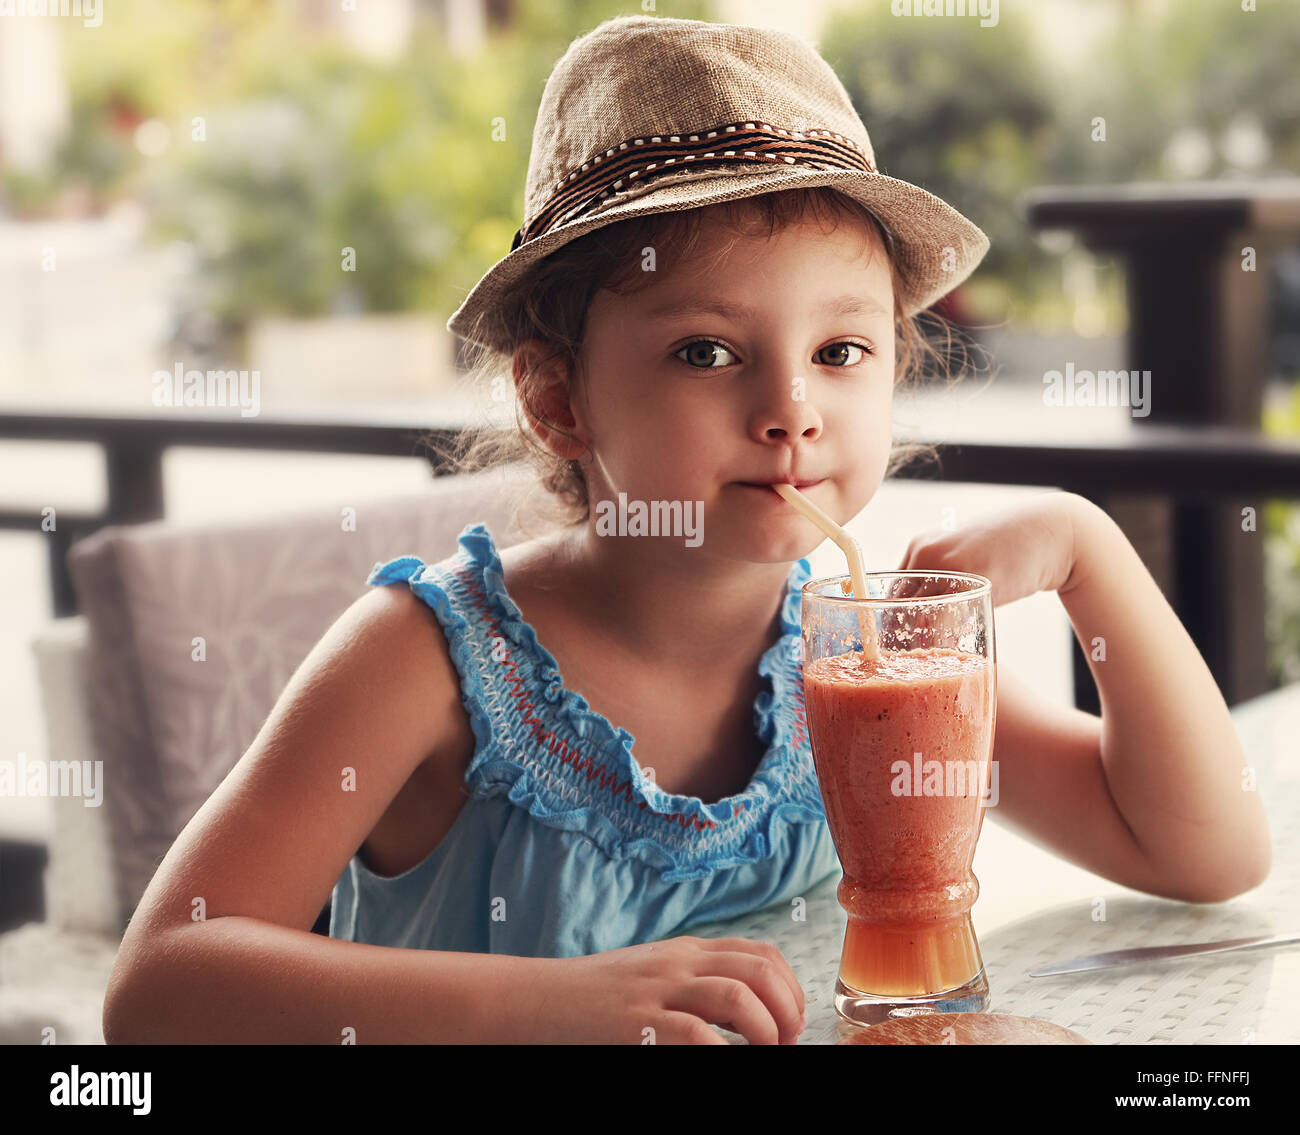 Fun kid girl in fashion hat drinking smoothie juice in street restaurant. Toned closeup portrait - Stock Image